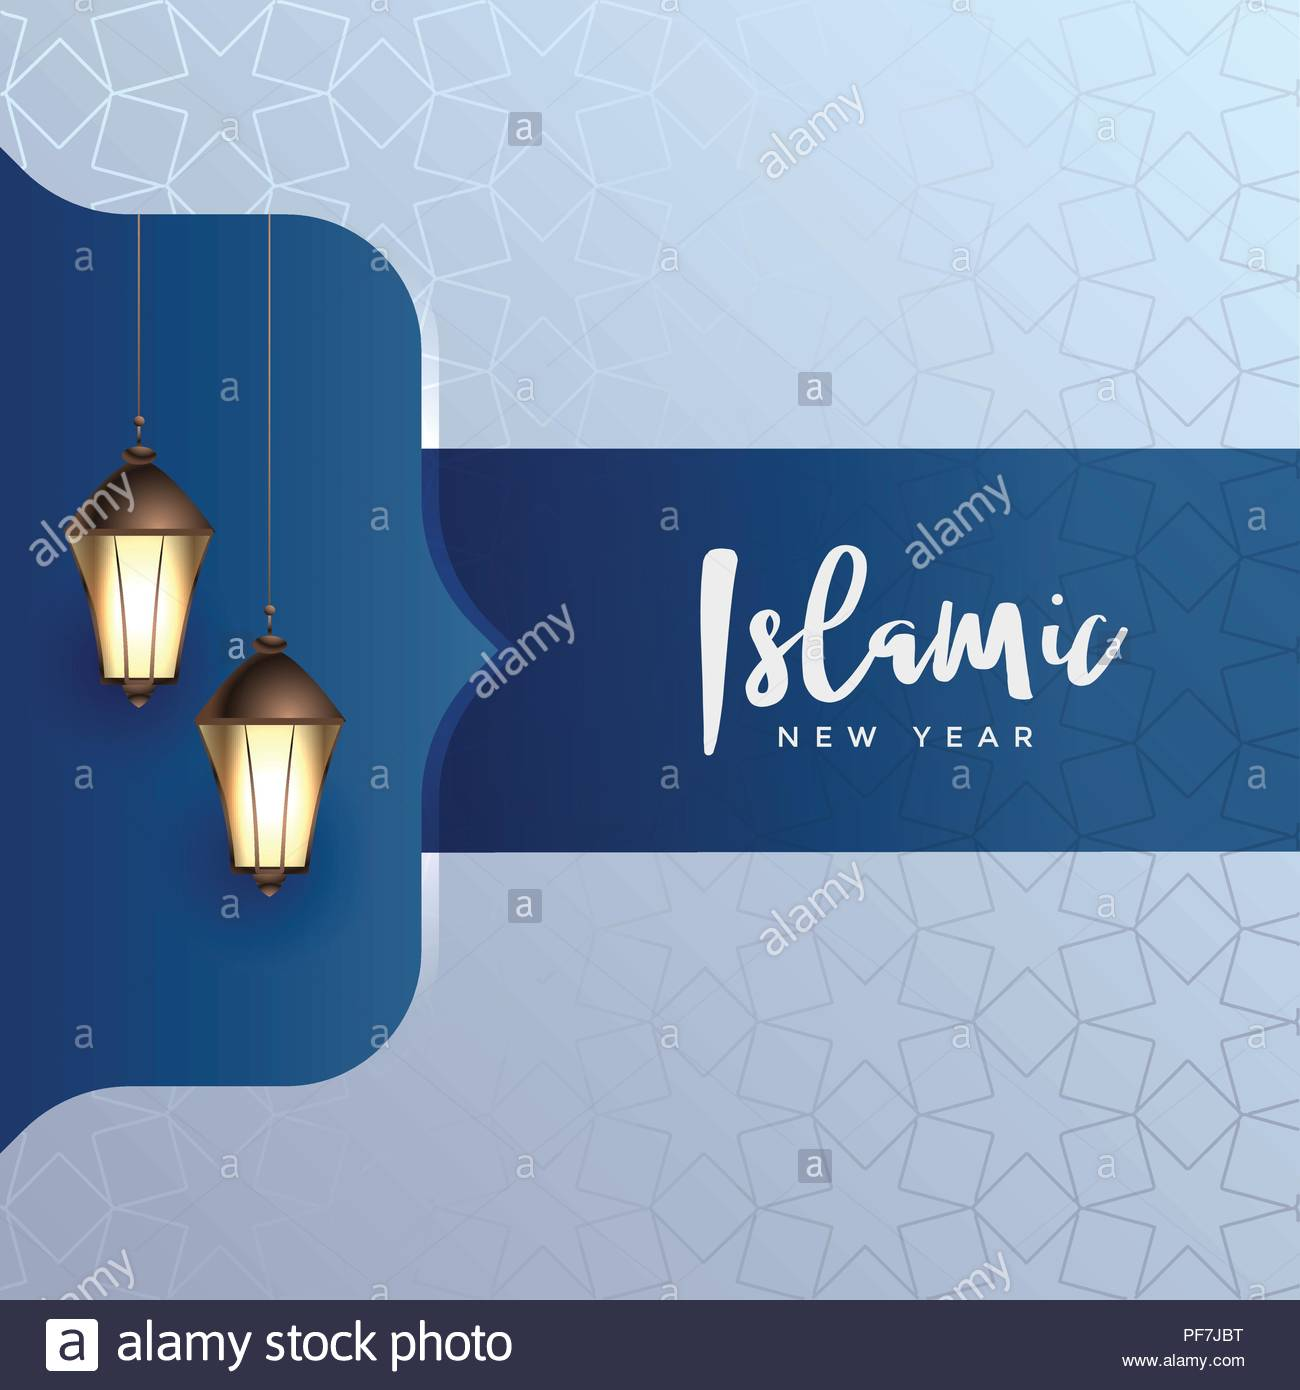 Elegant Islamic New Year Background With Hanging Lamps